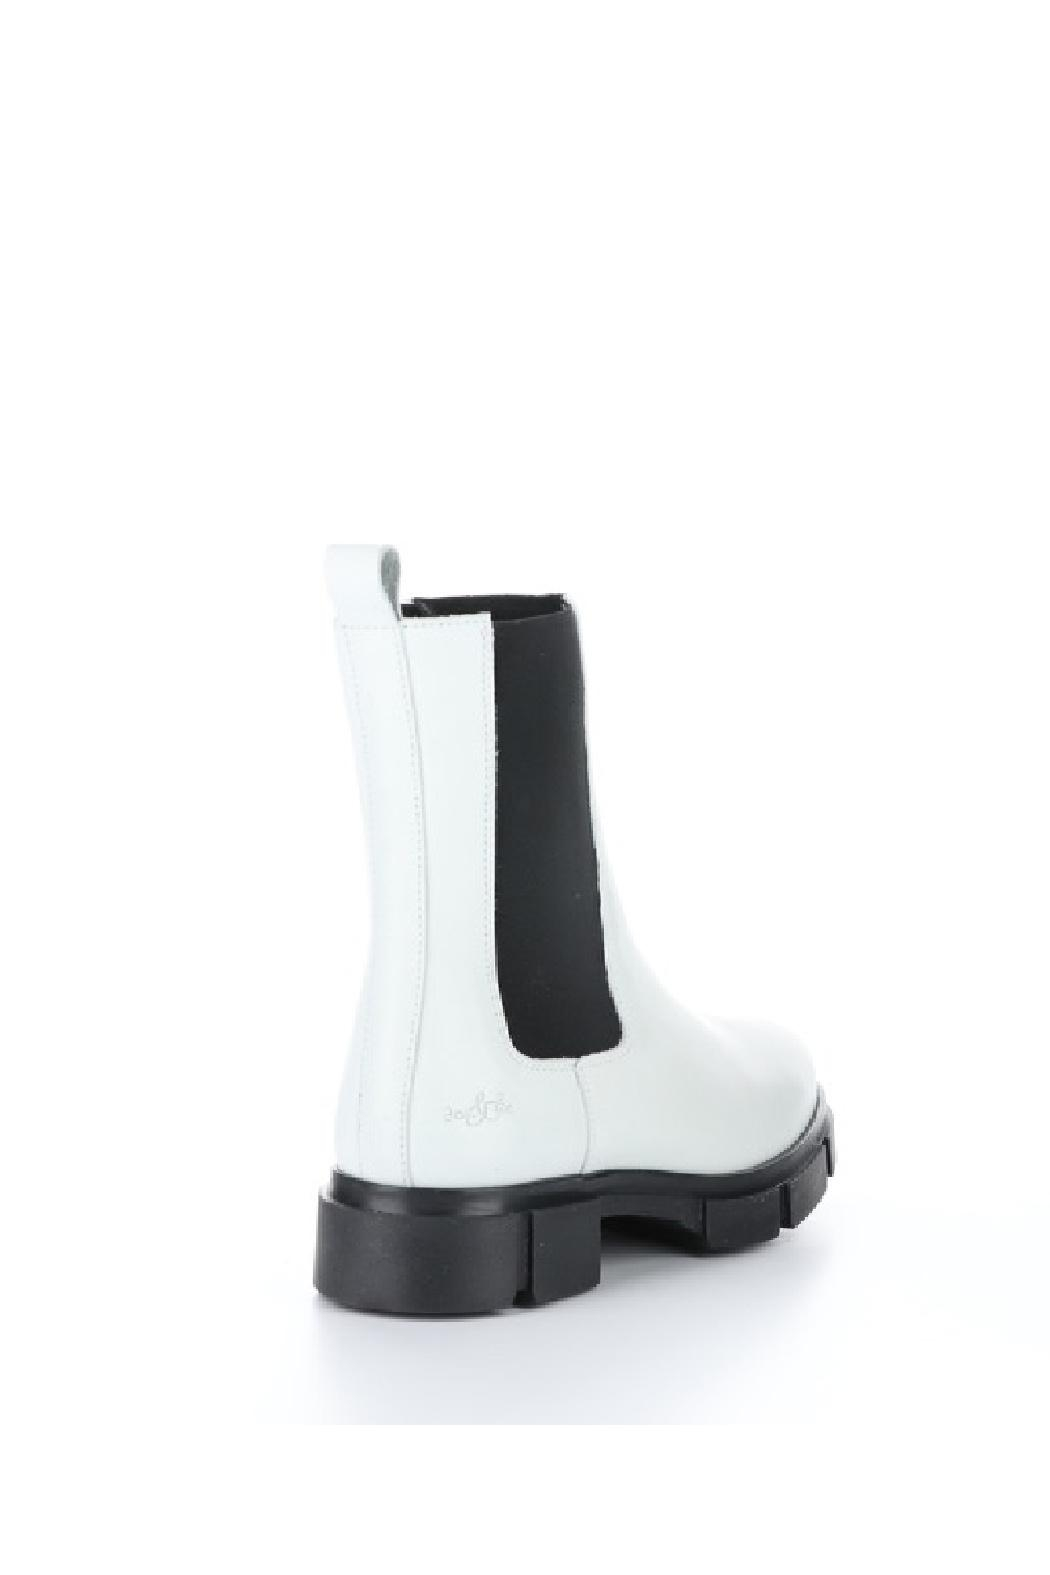 Bos & Co. Lock Boot - Black - Back Cropped Image